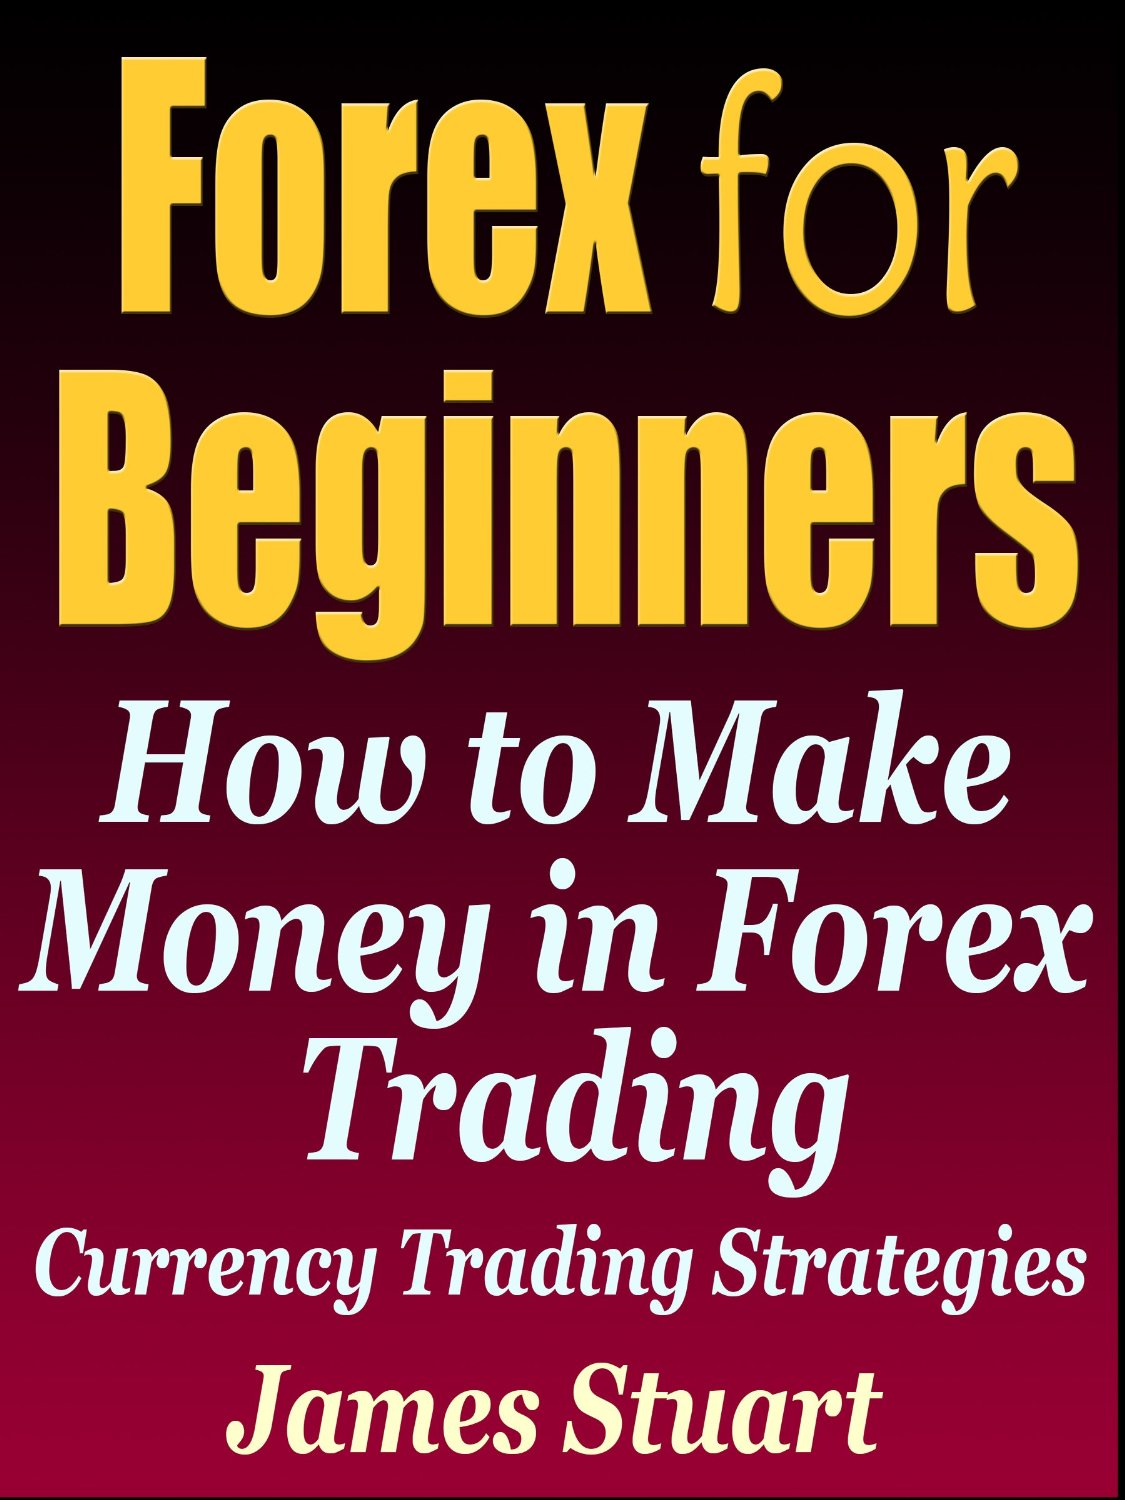 How to make money with forex